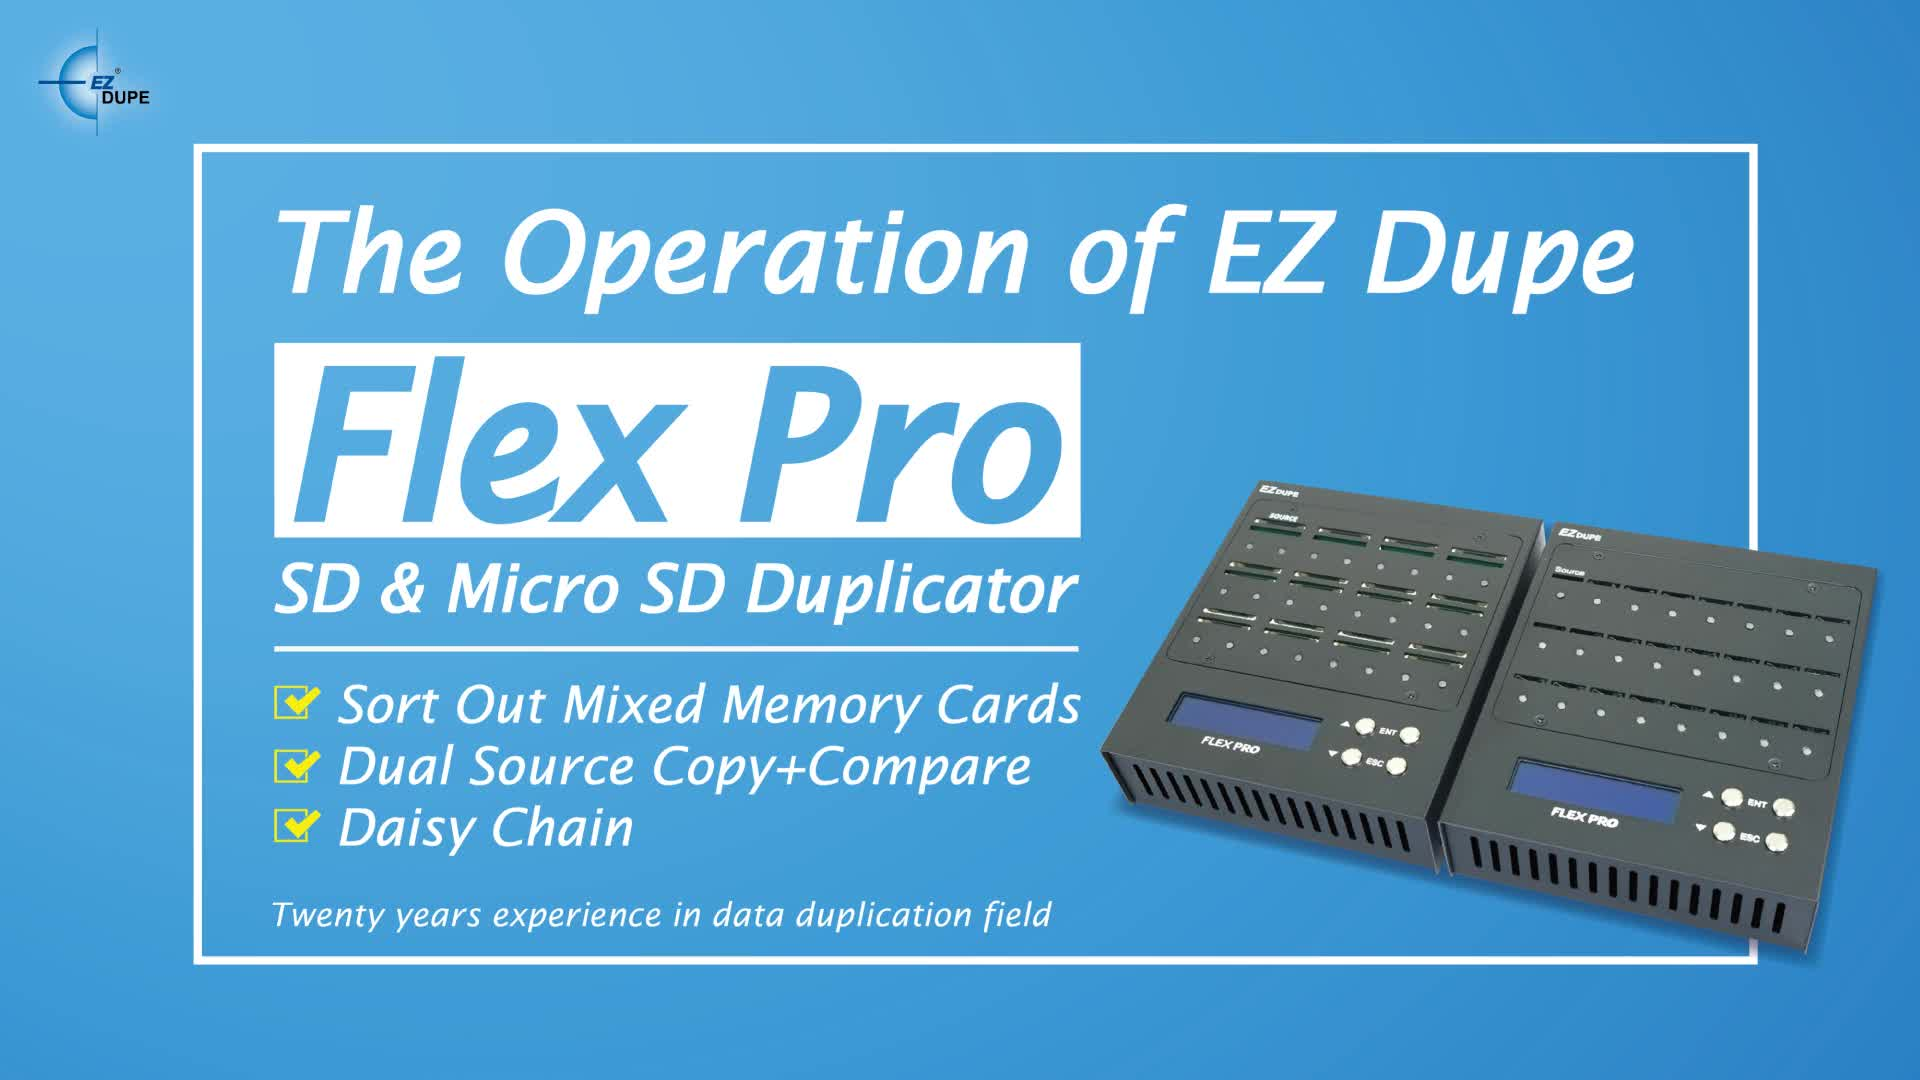 EZ Dupe Portable Flex Pro 1 to 23 targets Micro SD Card Duplicator